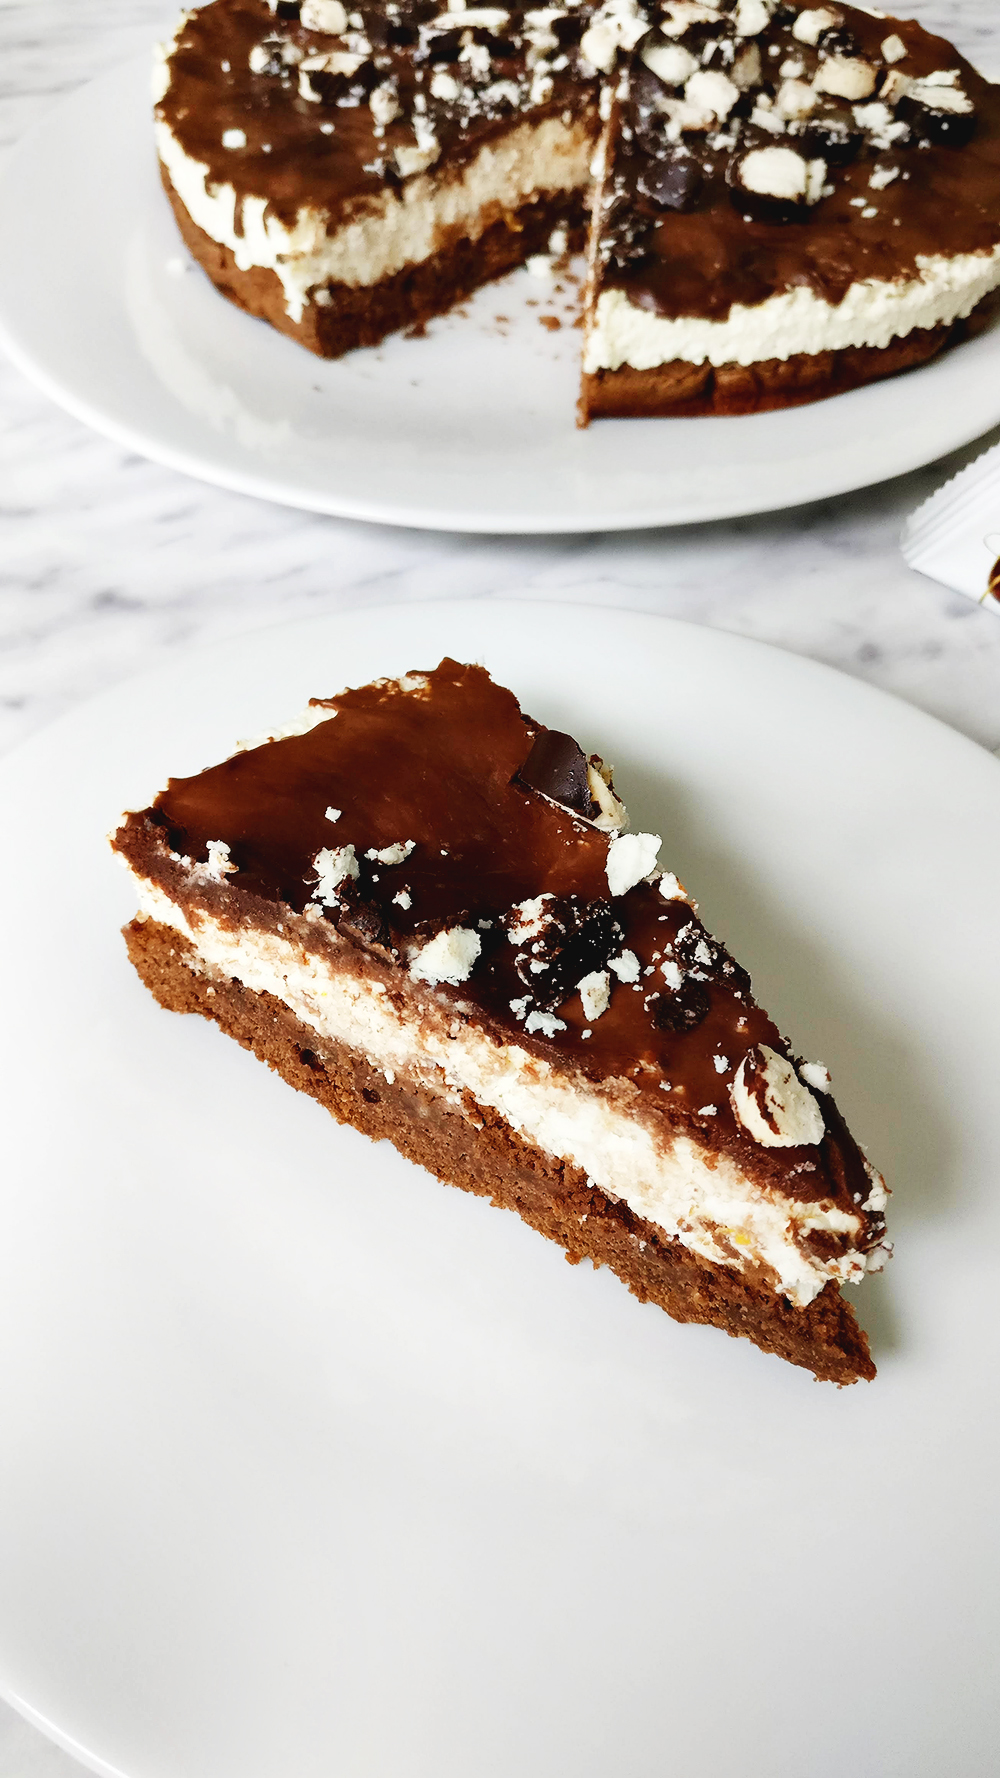 Hungarian cottage cheese chocolate (Túró Rudi) cake | Aliz's Wonderland #recipe #hungarianrecipe #cottagecheese #chocolatecake #cottagecheesecake